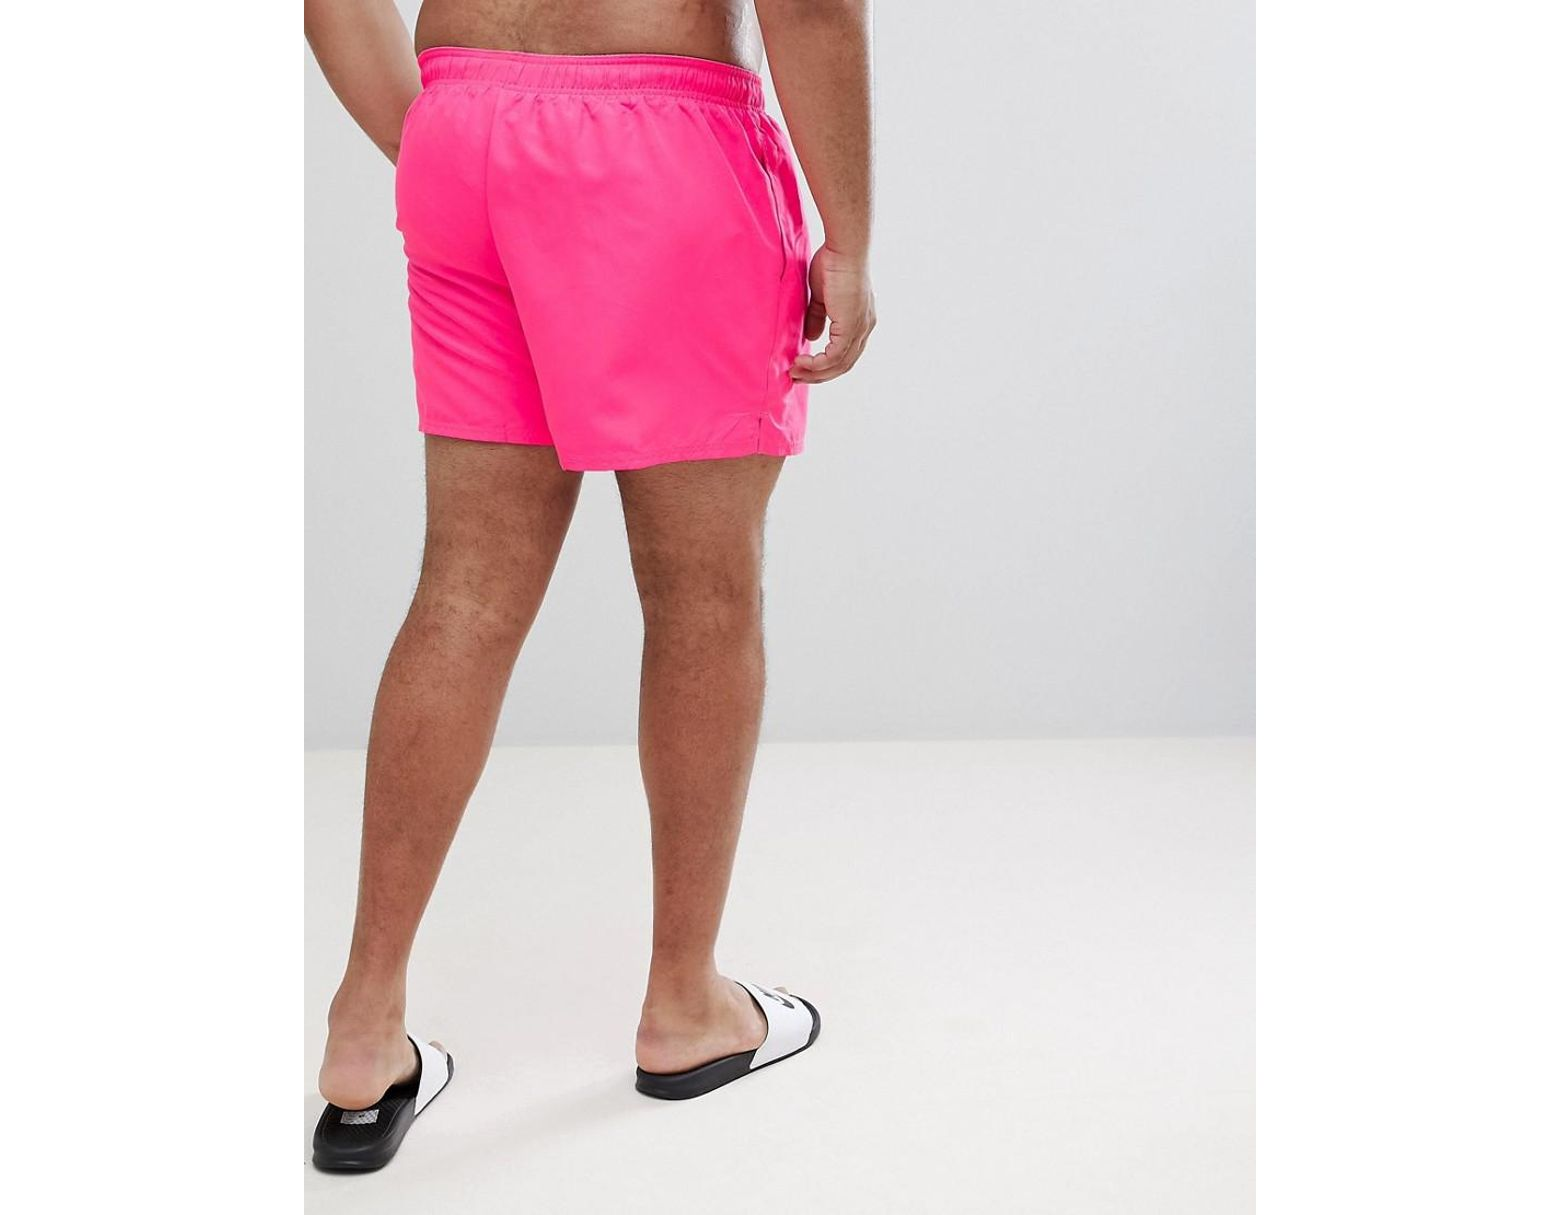 9a6608e69d0 Nike Nike Plus Exclusive Volley Swim Short In Pink Ness8830-678 in Pink for  Men - Lyst